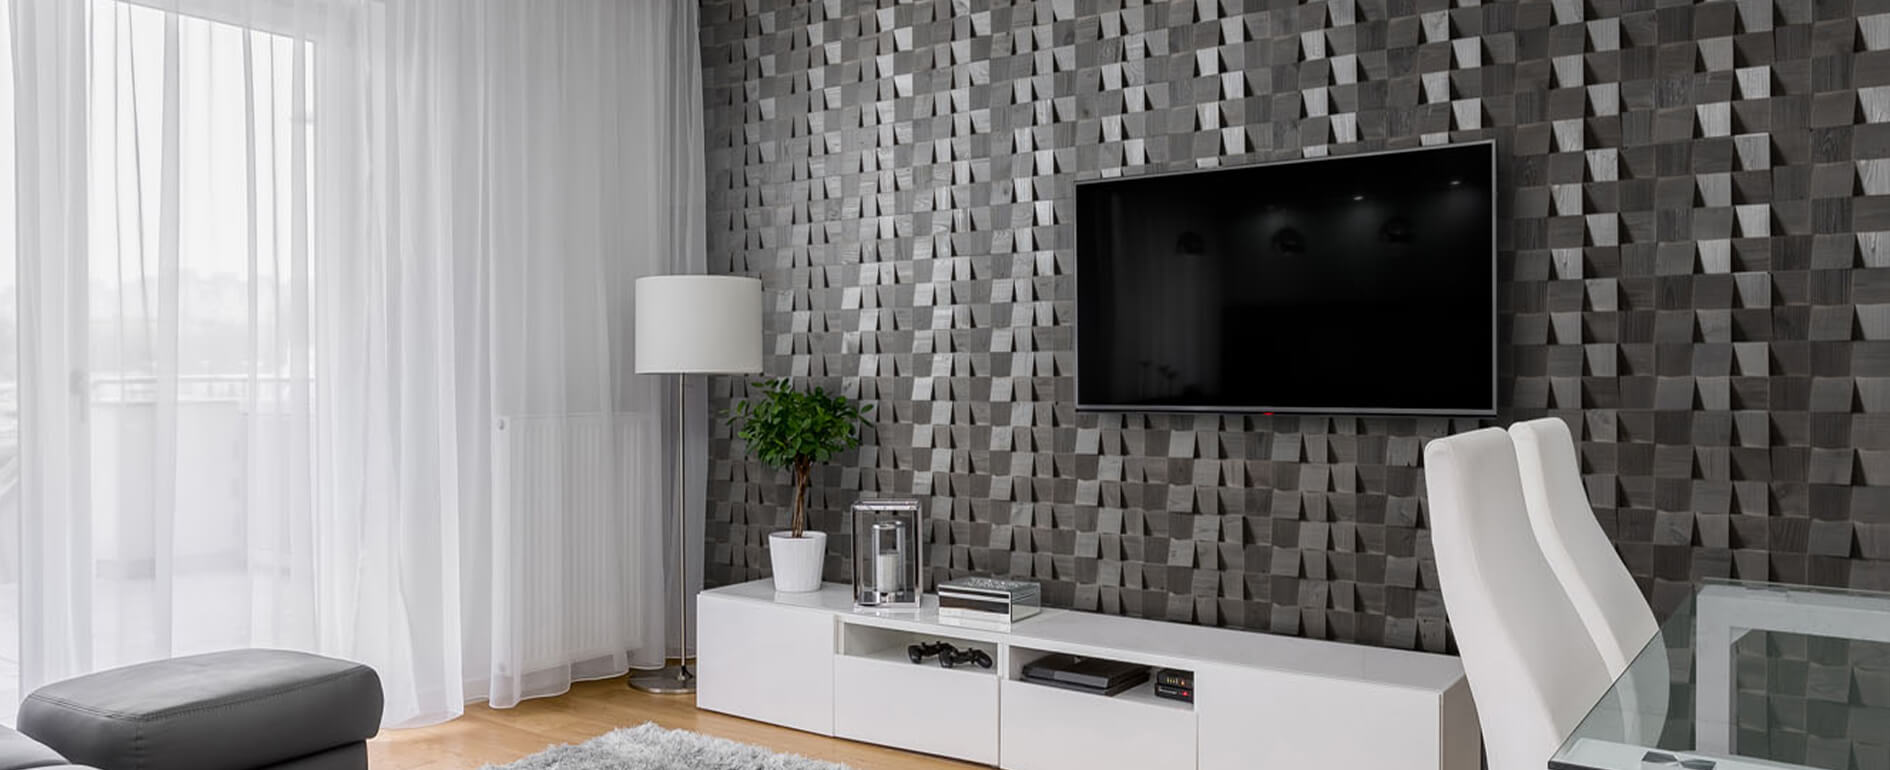 A living room featuring grey 3D wooden wall cladding behind a wall mounted TV